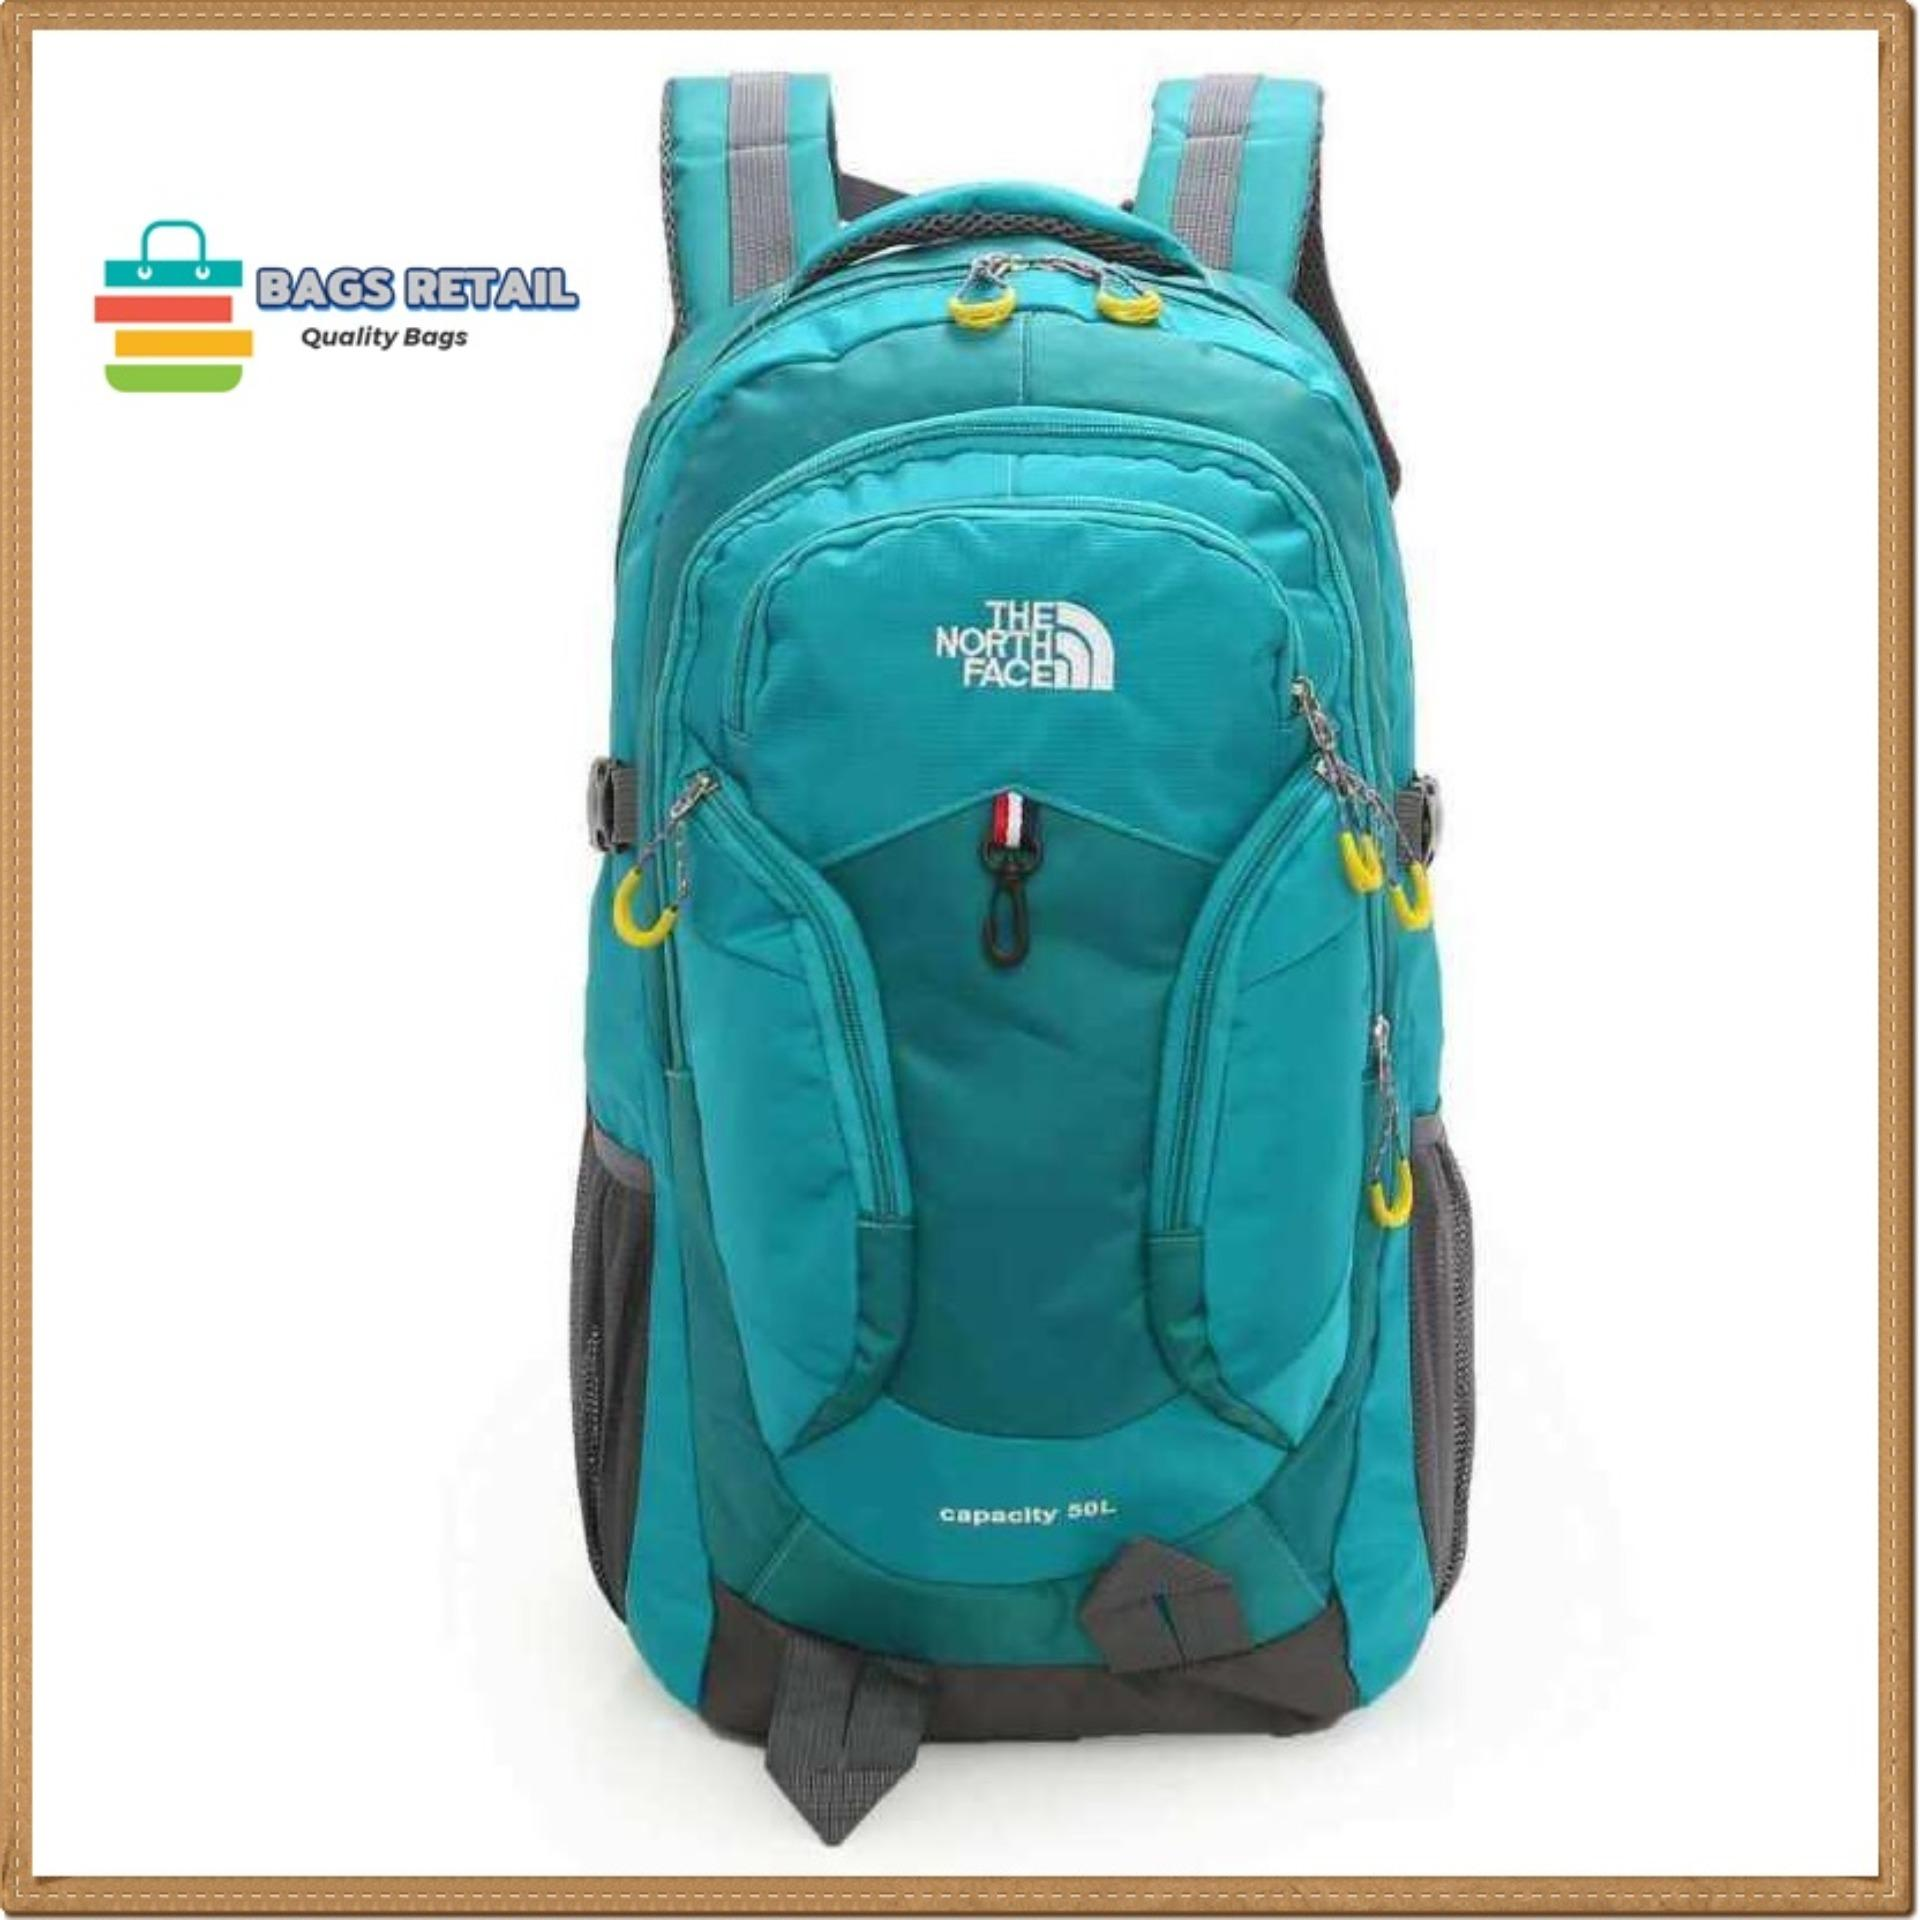 The North Face Philippines  The North Face price list - Laptop ... 988839b15e5d